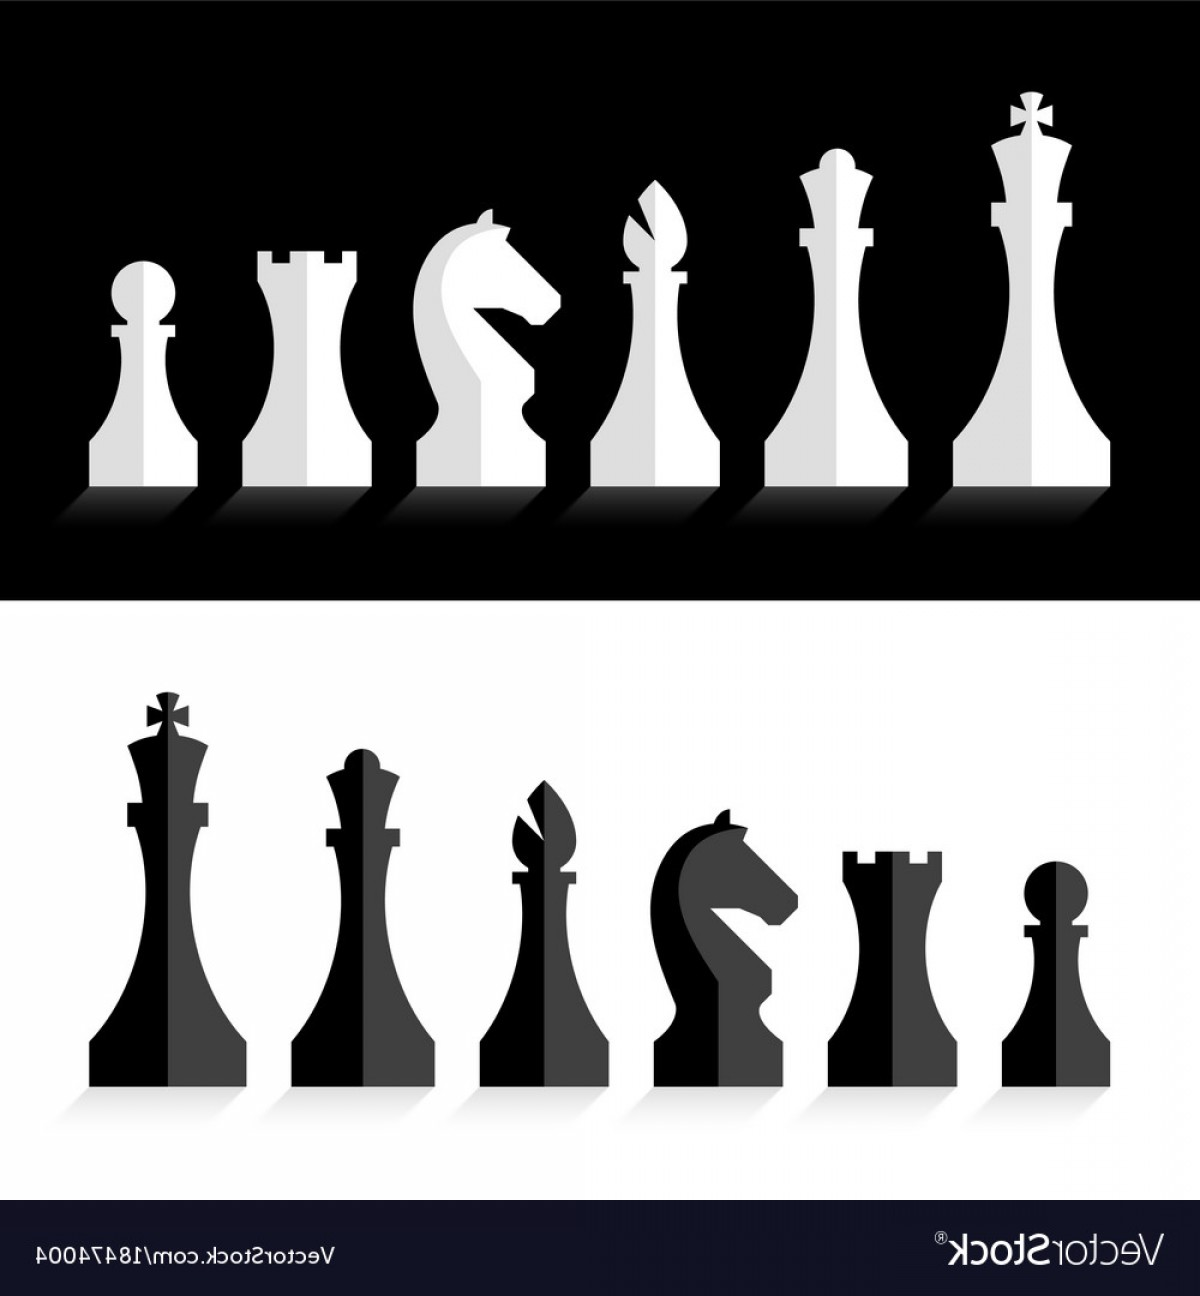 Vector Chess Board: Black And White Chess Pieces Flat Design Style Vector